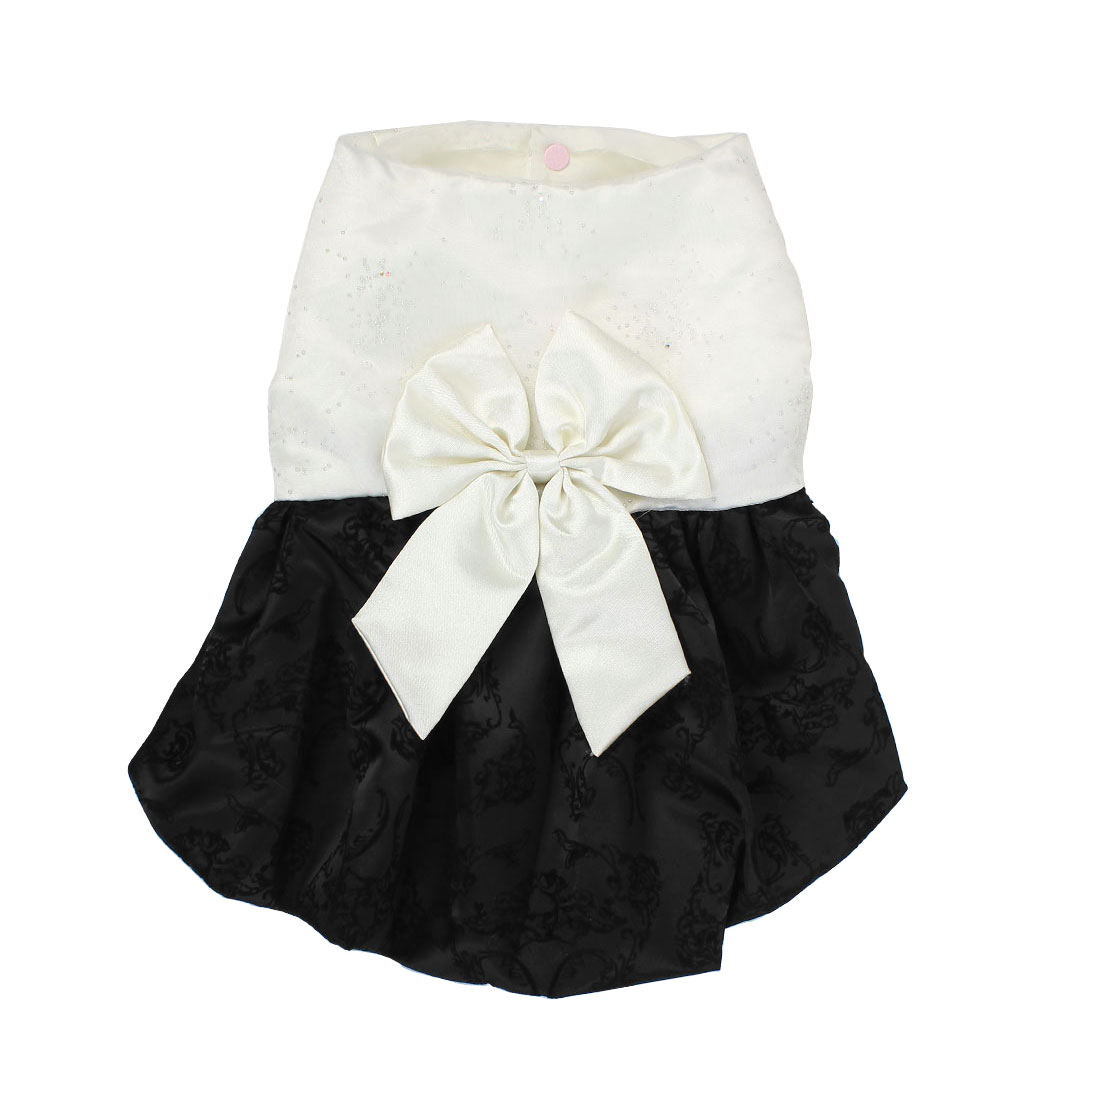 Pet Dog Puppy Princess Flowers Pattern Bowknot Party Dress Skirt White Size M